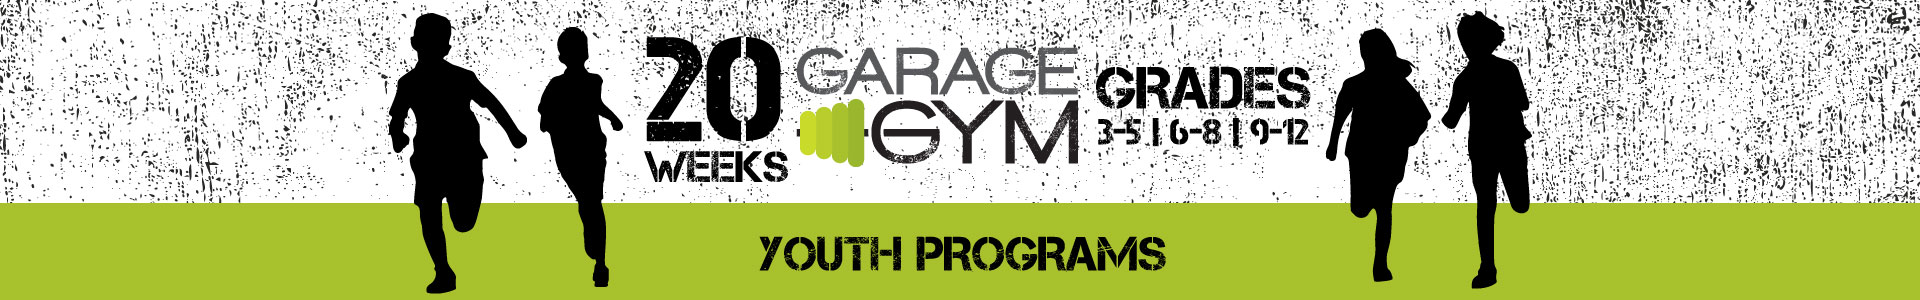 Youth-Program-The-Garage-Gym